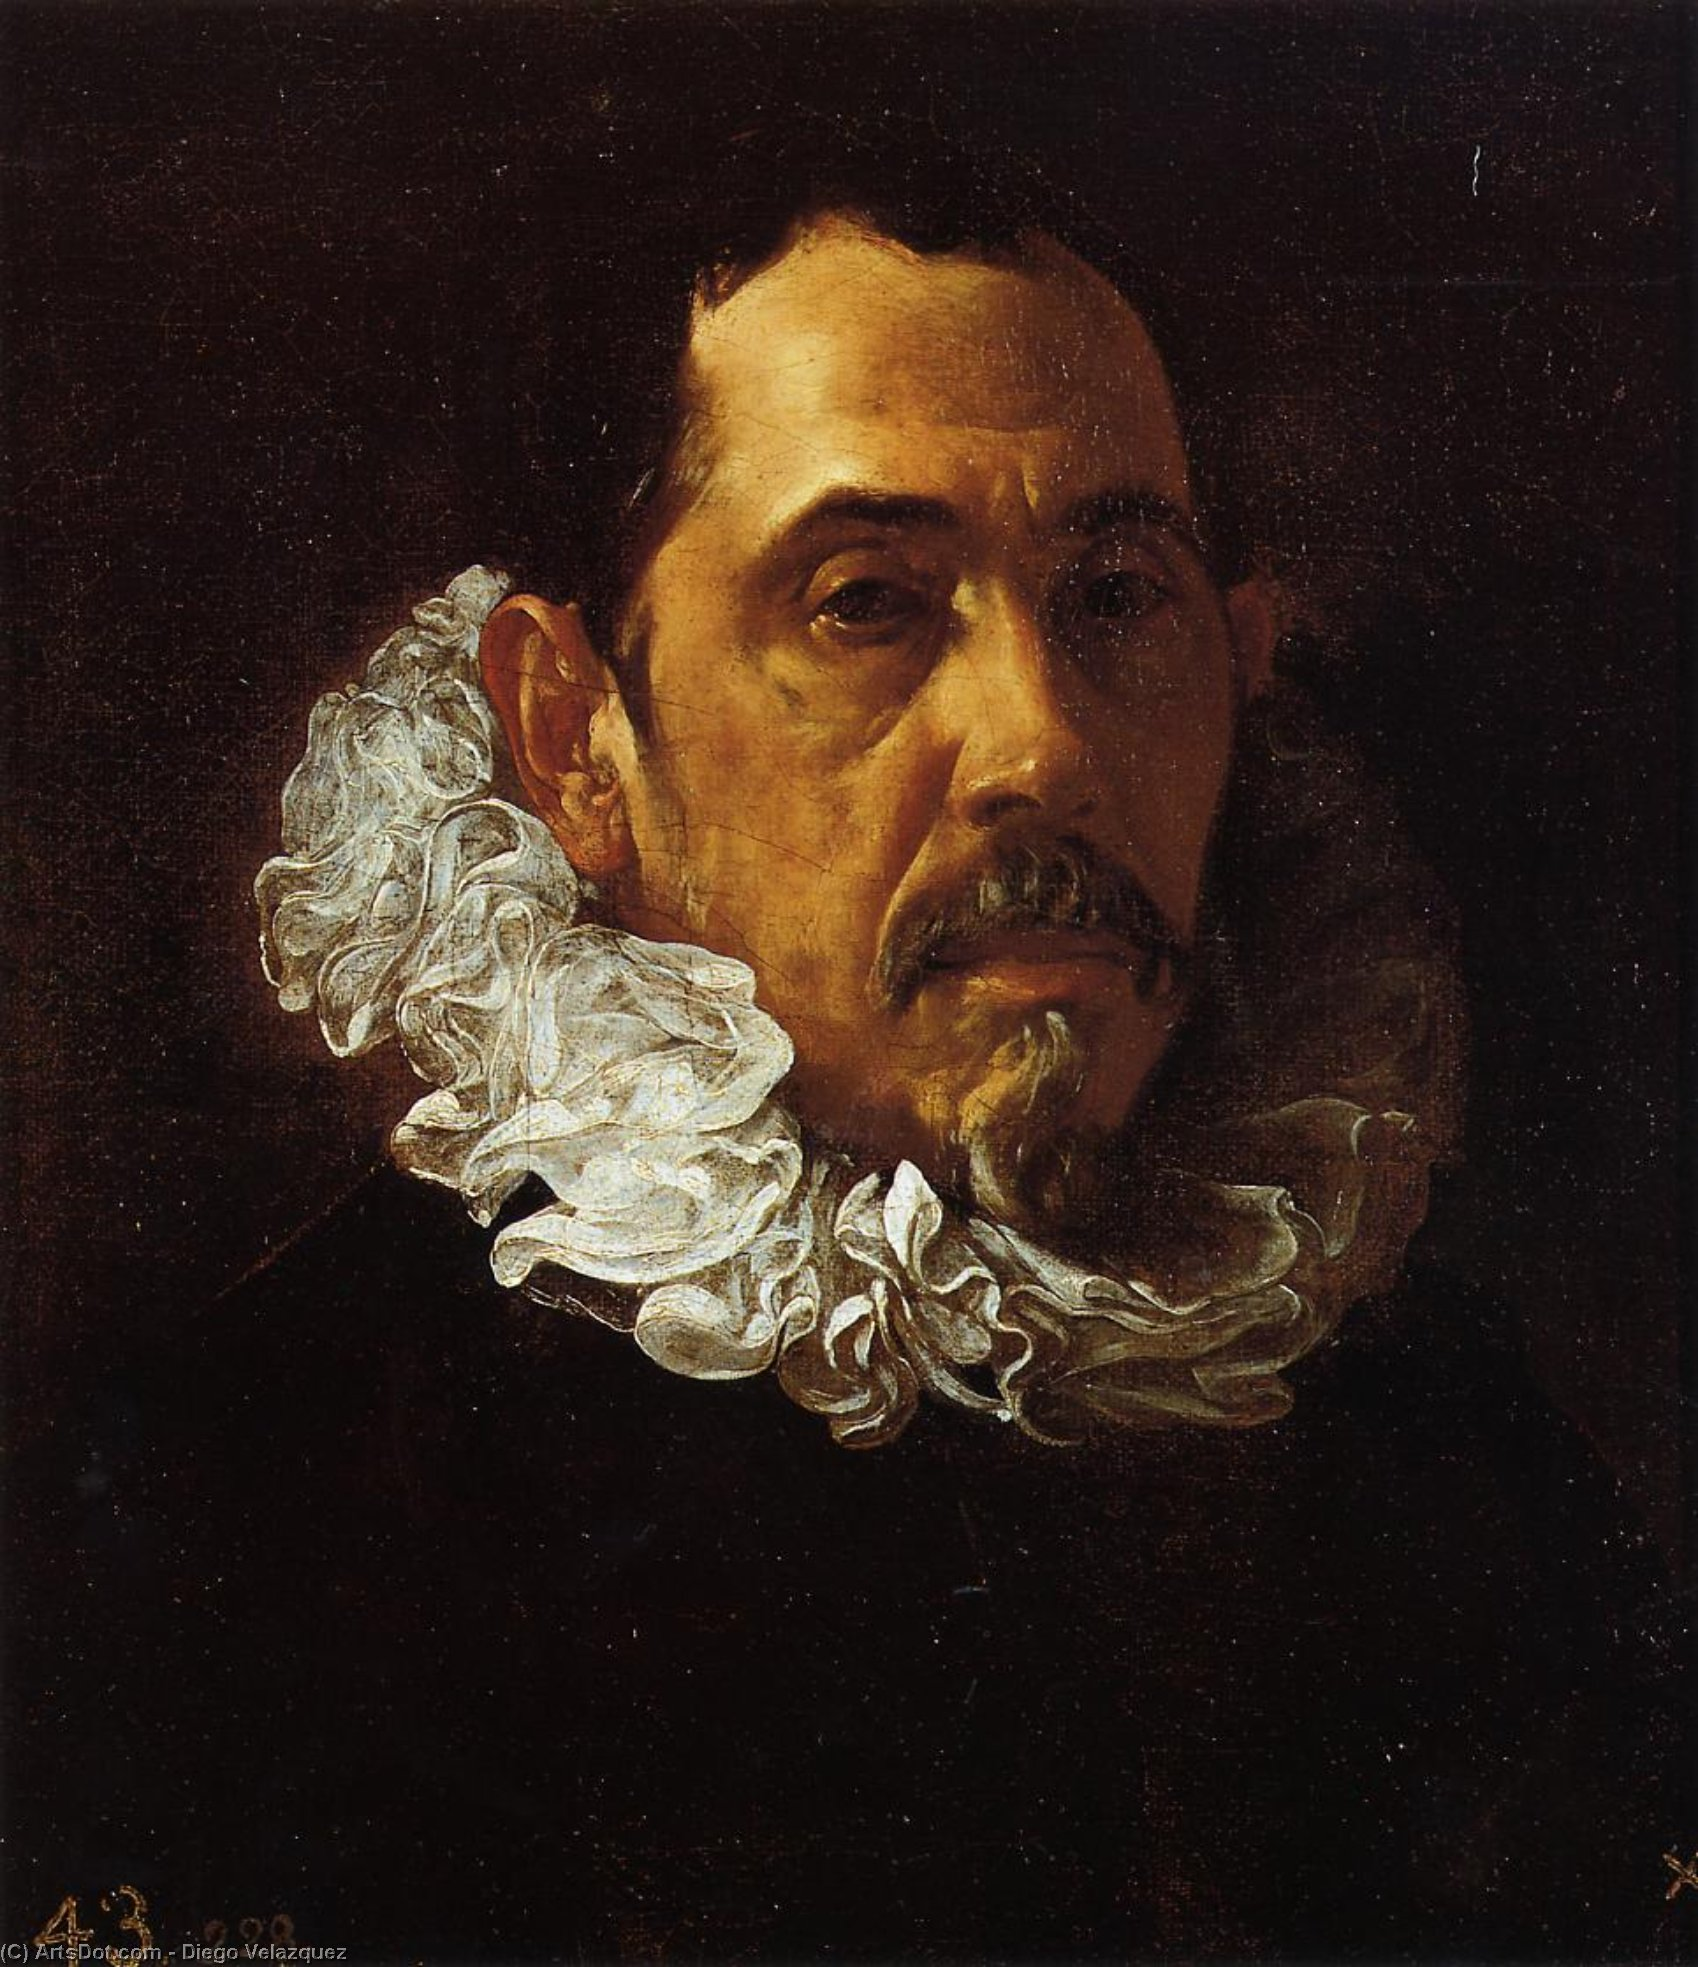 Portrait of a Man with a Goatee, Oil On Canvas by Diego Velazquez (1599-1660, Spain)